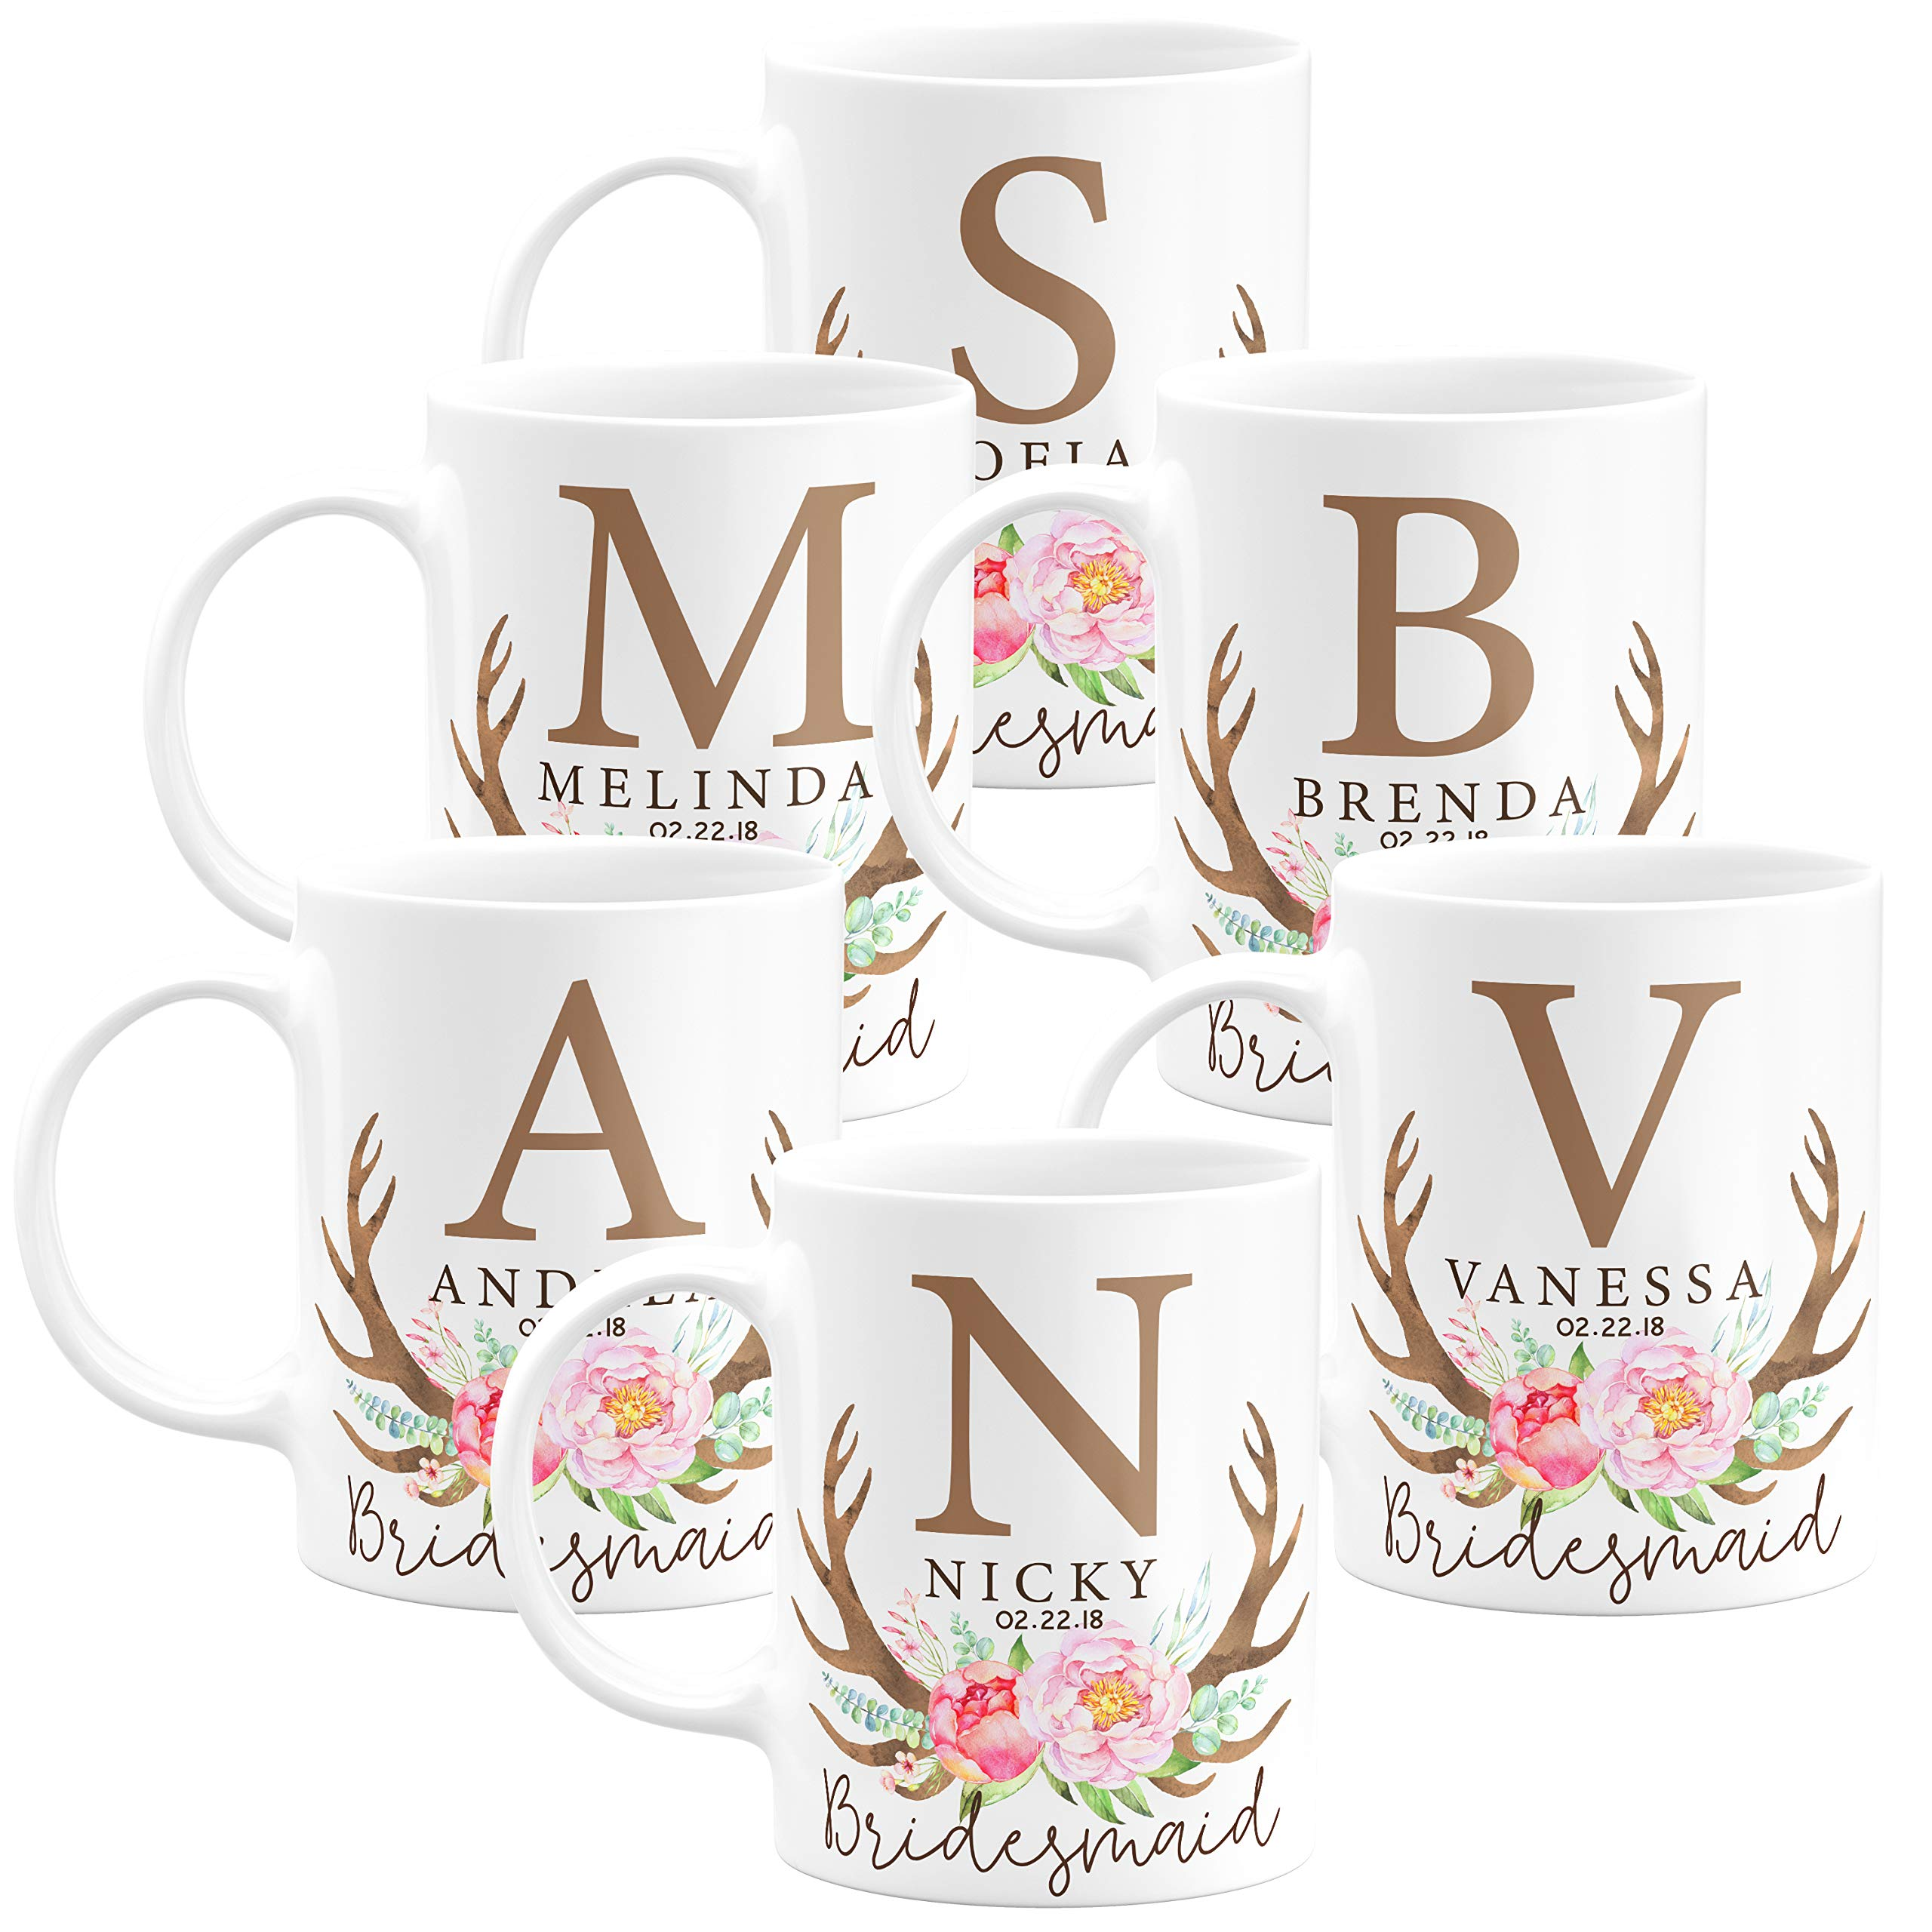 Personalized Bridesmaid Coffee Mug Gifts with Name and Title - 11oz - Wedding Favors,Party Favors, Bridesmaid Gifts, Housewarming Gifts - Design 5 - Set of 6